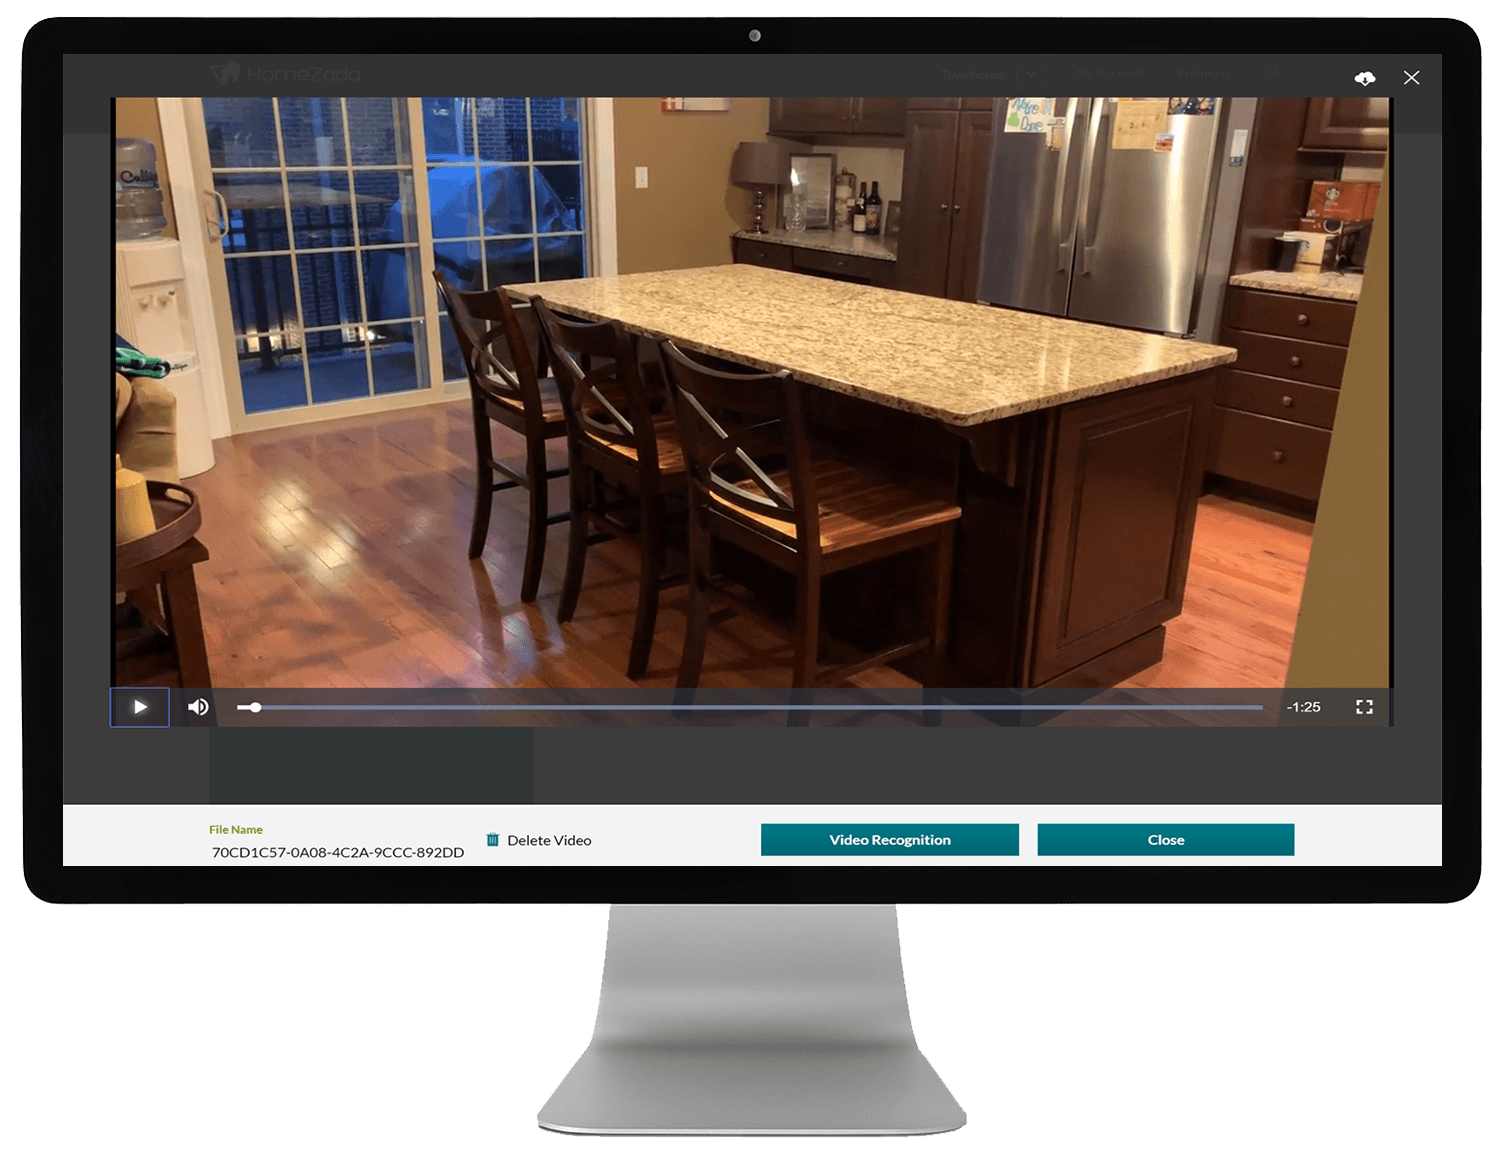 Home Inventory Videos and Recognition AI for Easy Documentation